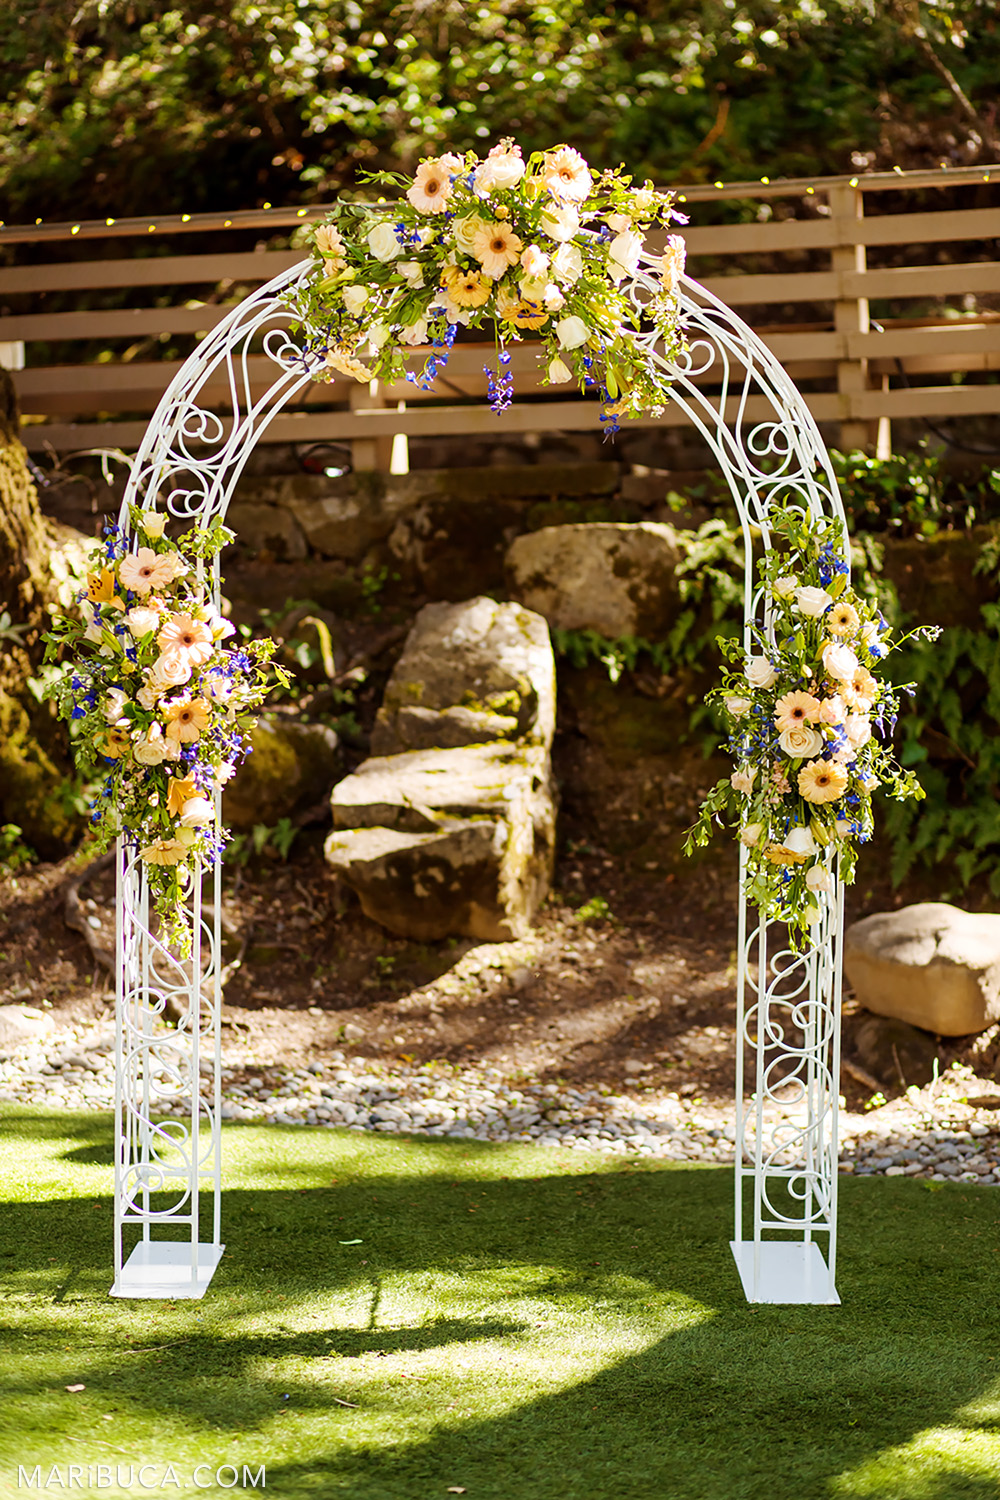 Wedding arch for the ceremony in the Saratoga Springs Venue